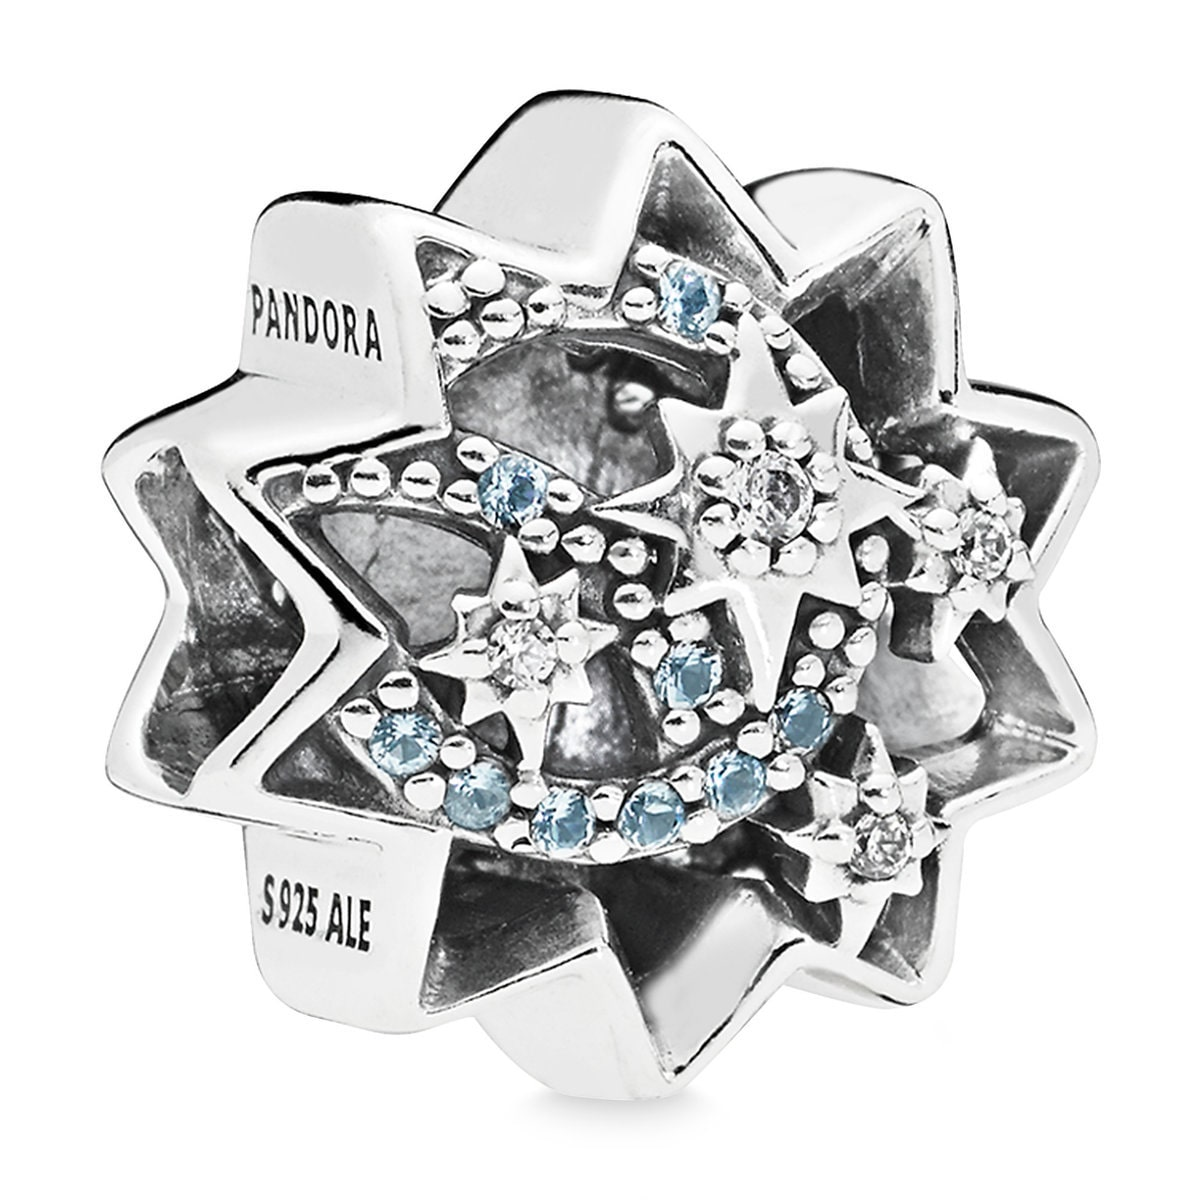 a709ed9d7 Pinocchio ''When You Wish Upon a Star'' Charm by Pandora Jewelry ...